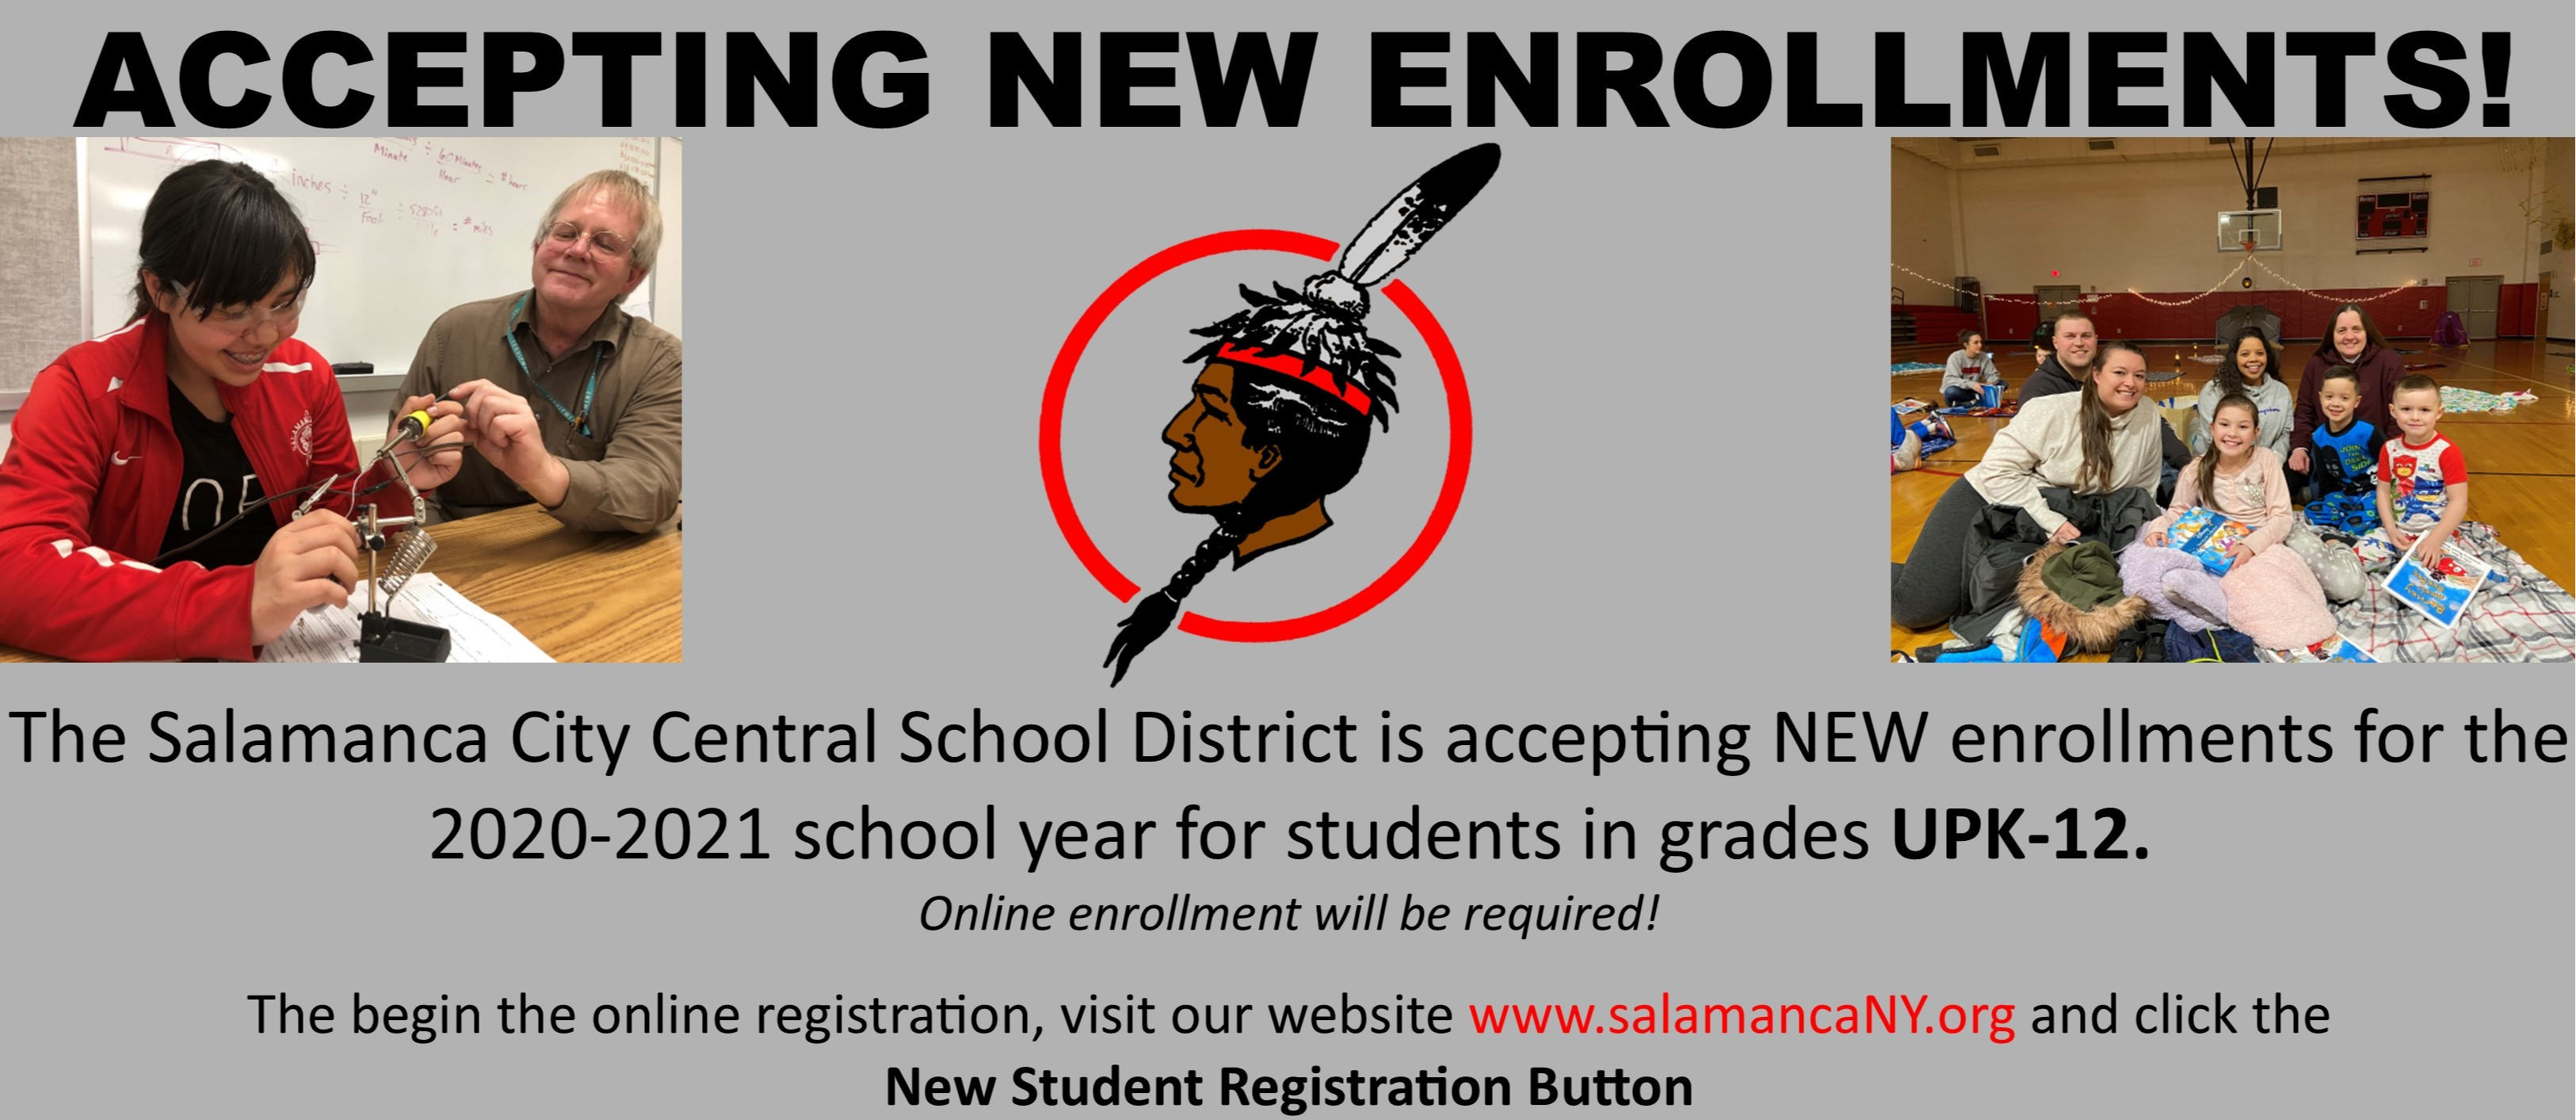 New Student Enrollment flyer with 4 photos and text